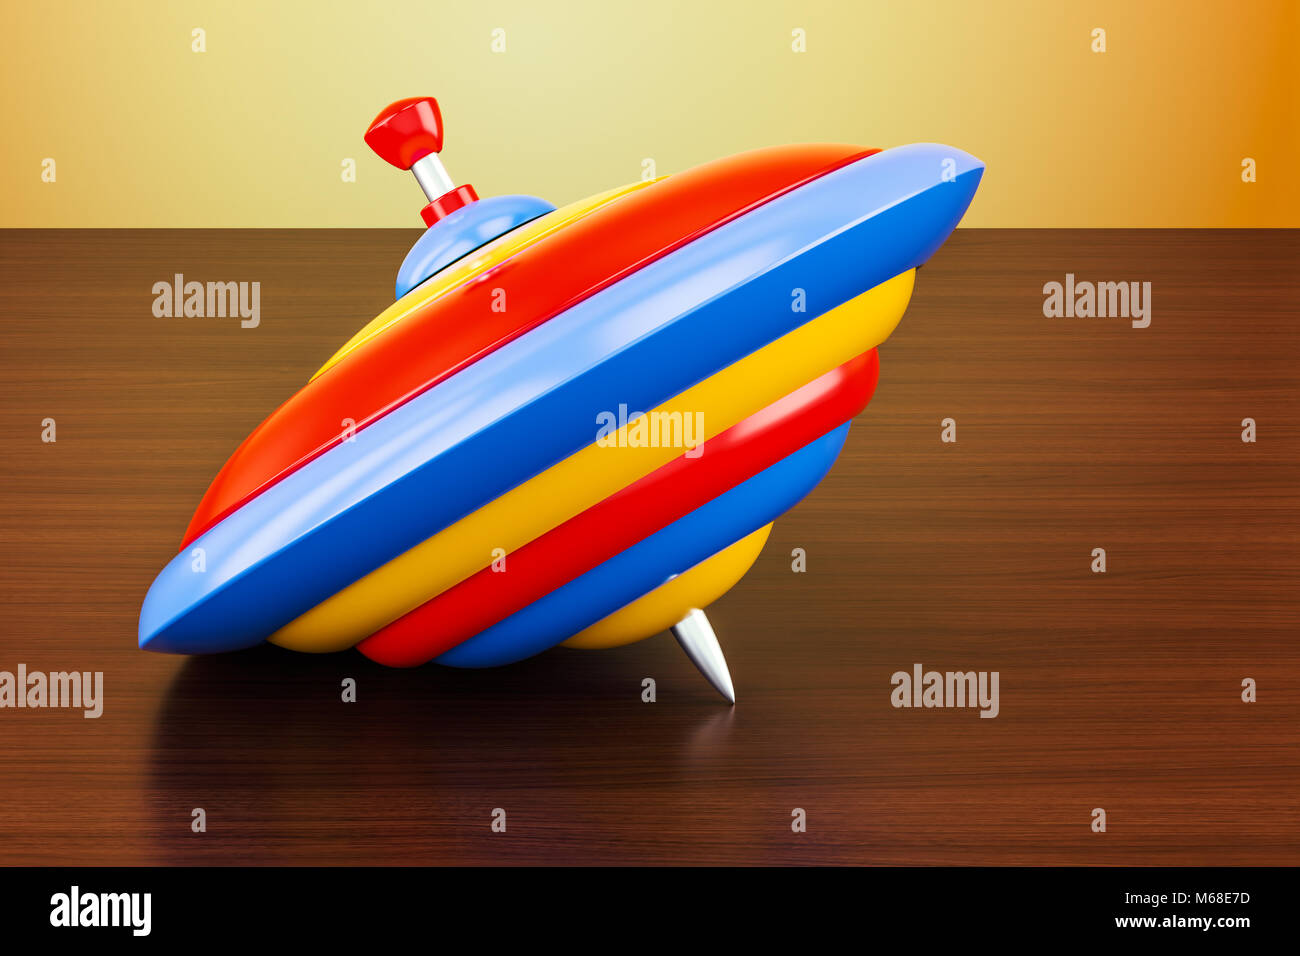 Whirligig top on the wooden table. 3D rendering - Stock Image